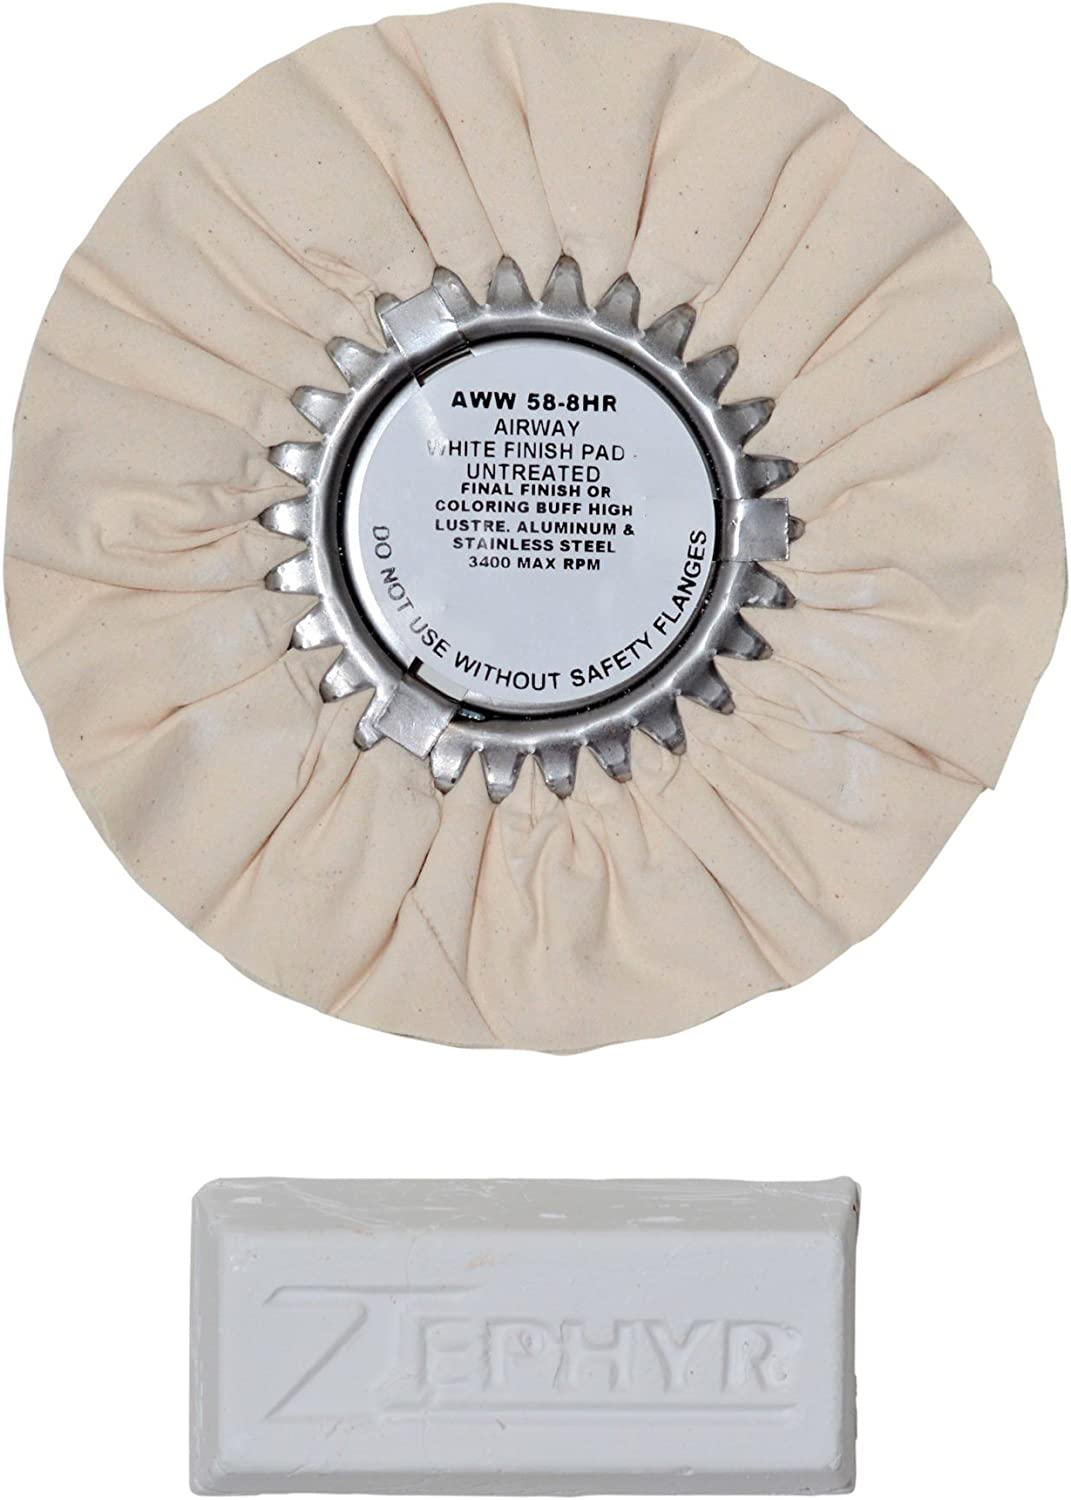 Zephyr AWW58-8WB White 8 Airway Buffing Wheel with 1 LB Bar Final Finish